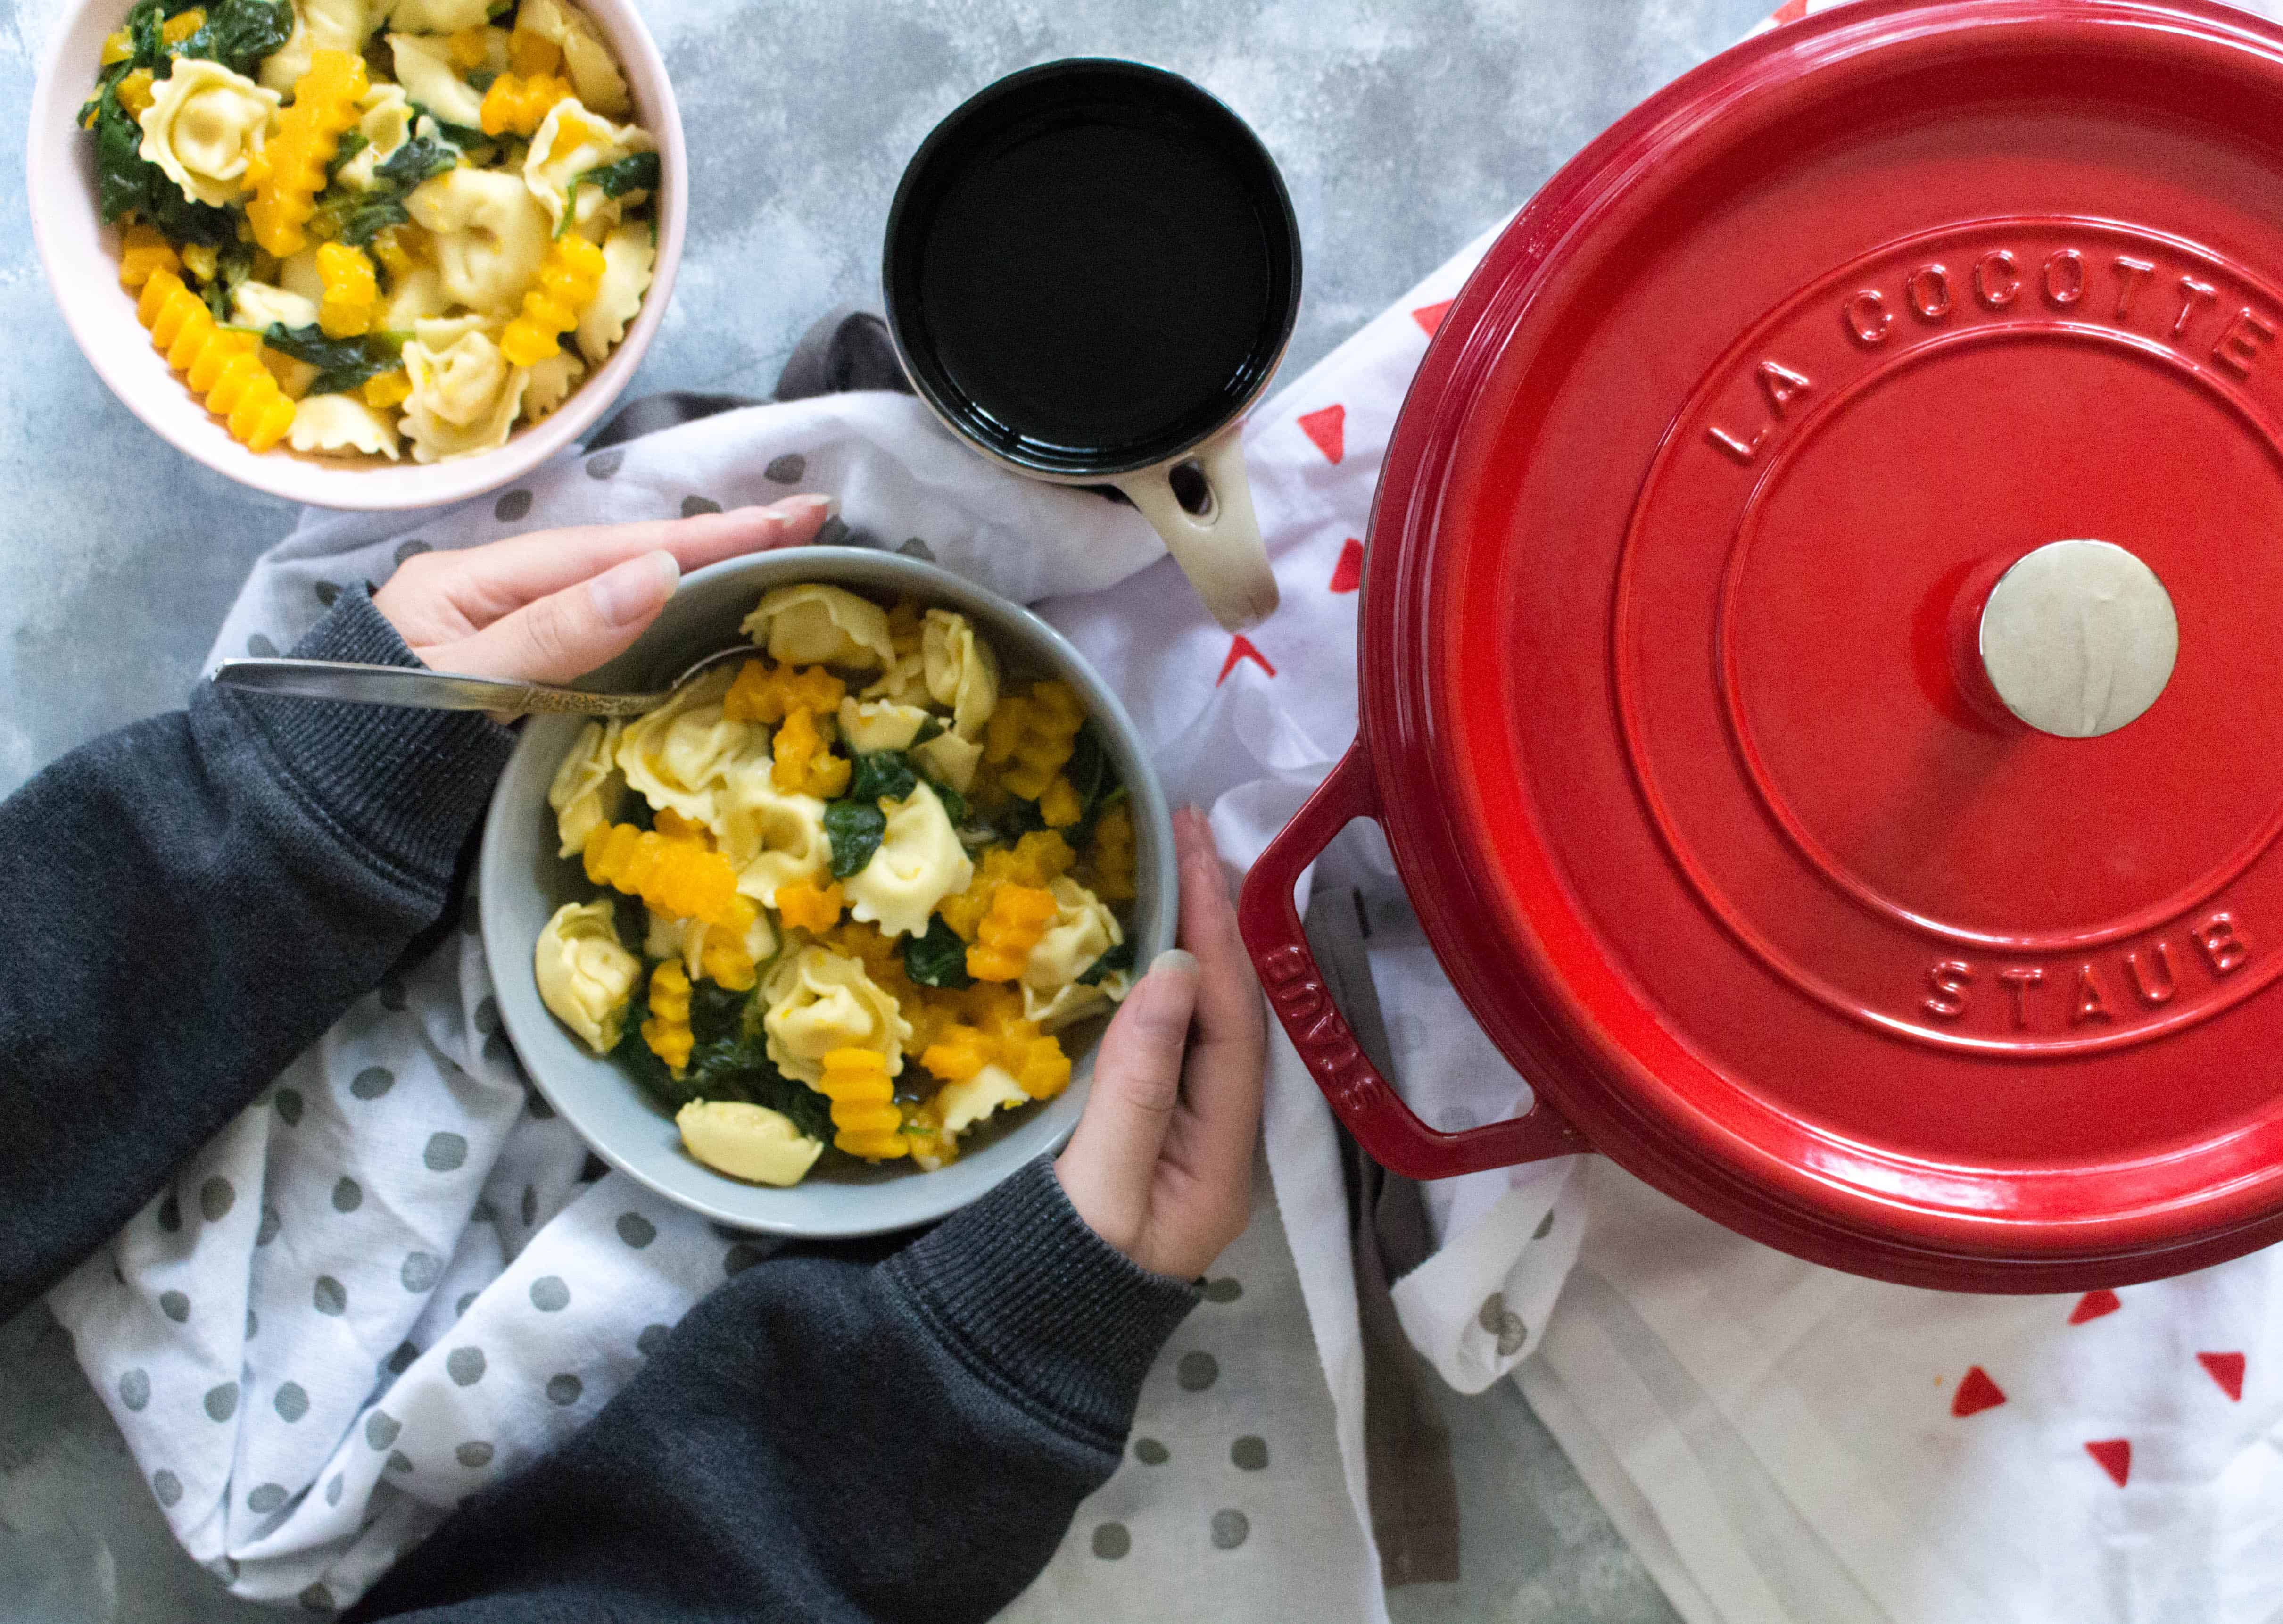 This One Pot Cheese Tortellini with Butternut Squash and Spinach will be one of the fastest dinners you'll make! It's delicious, easy, and takes under 30 minutes to make.